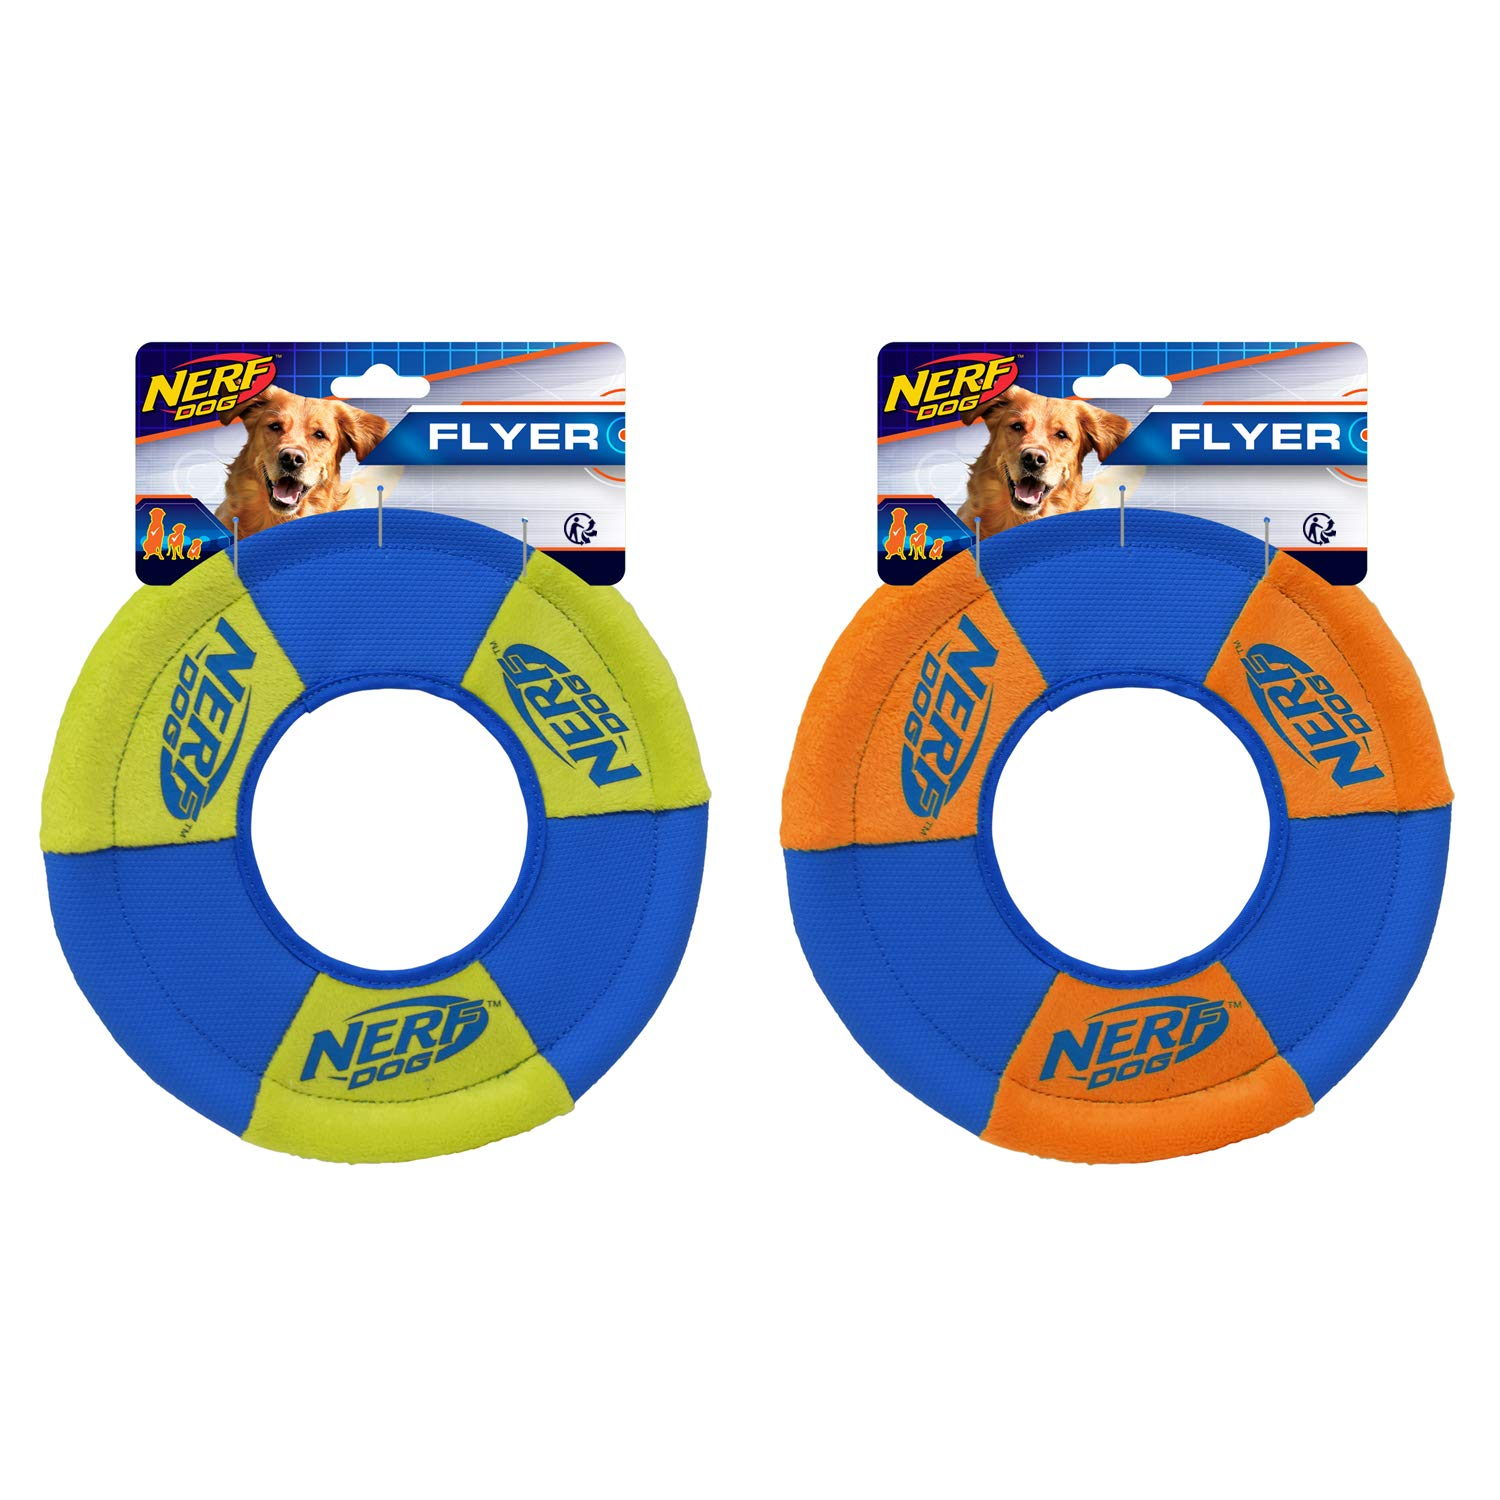 Nerf Dog (2-Pack) UltraPlush Trackshot Toss and Tug Ring Dog Toy, Orange/Blue & Green/Blue, Medium by Nerf Dog